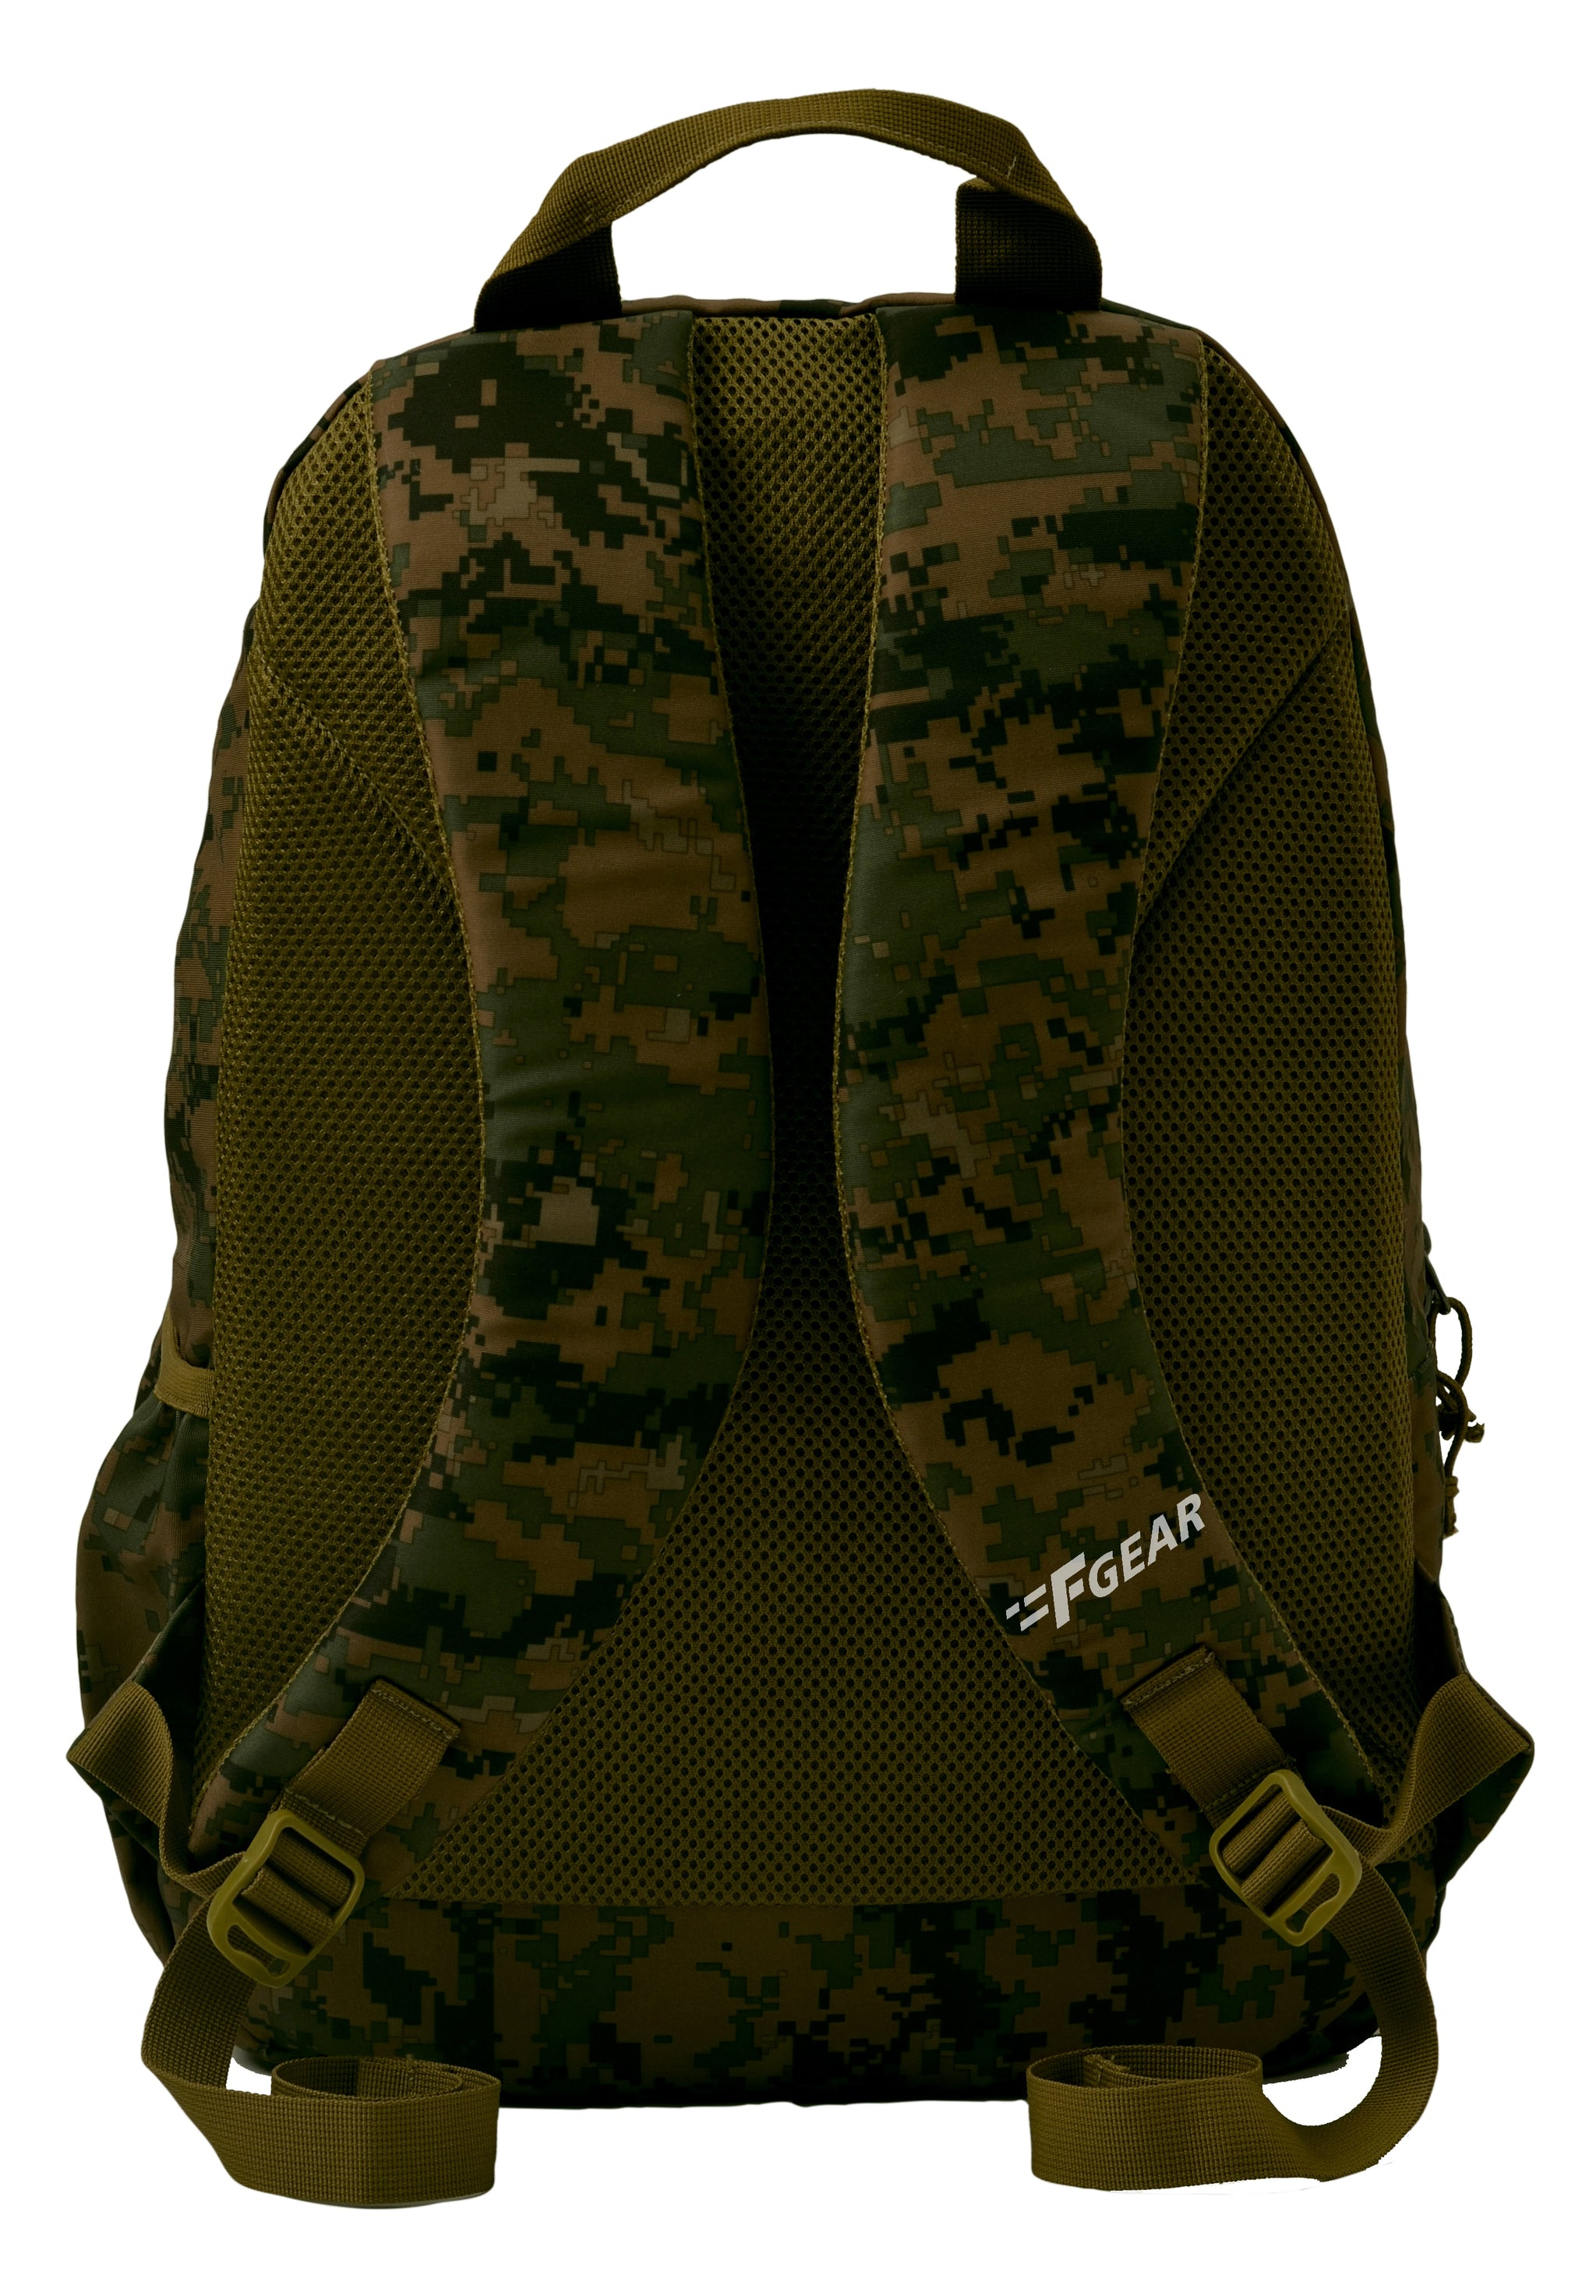 F Gear Military Raider Marpat WL Digital Camo 30 Liter Backpack with Rain Cover (2808)